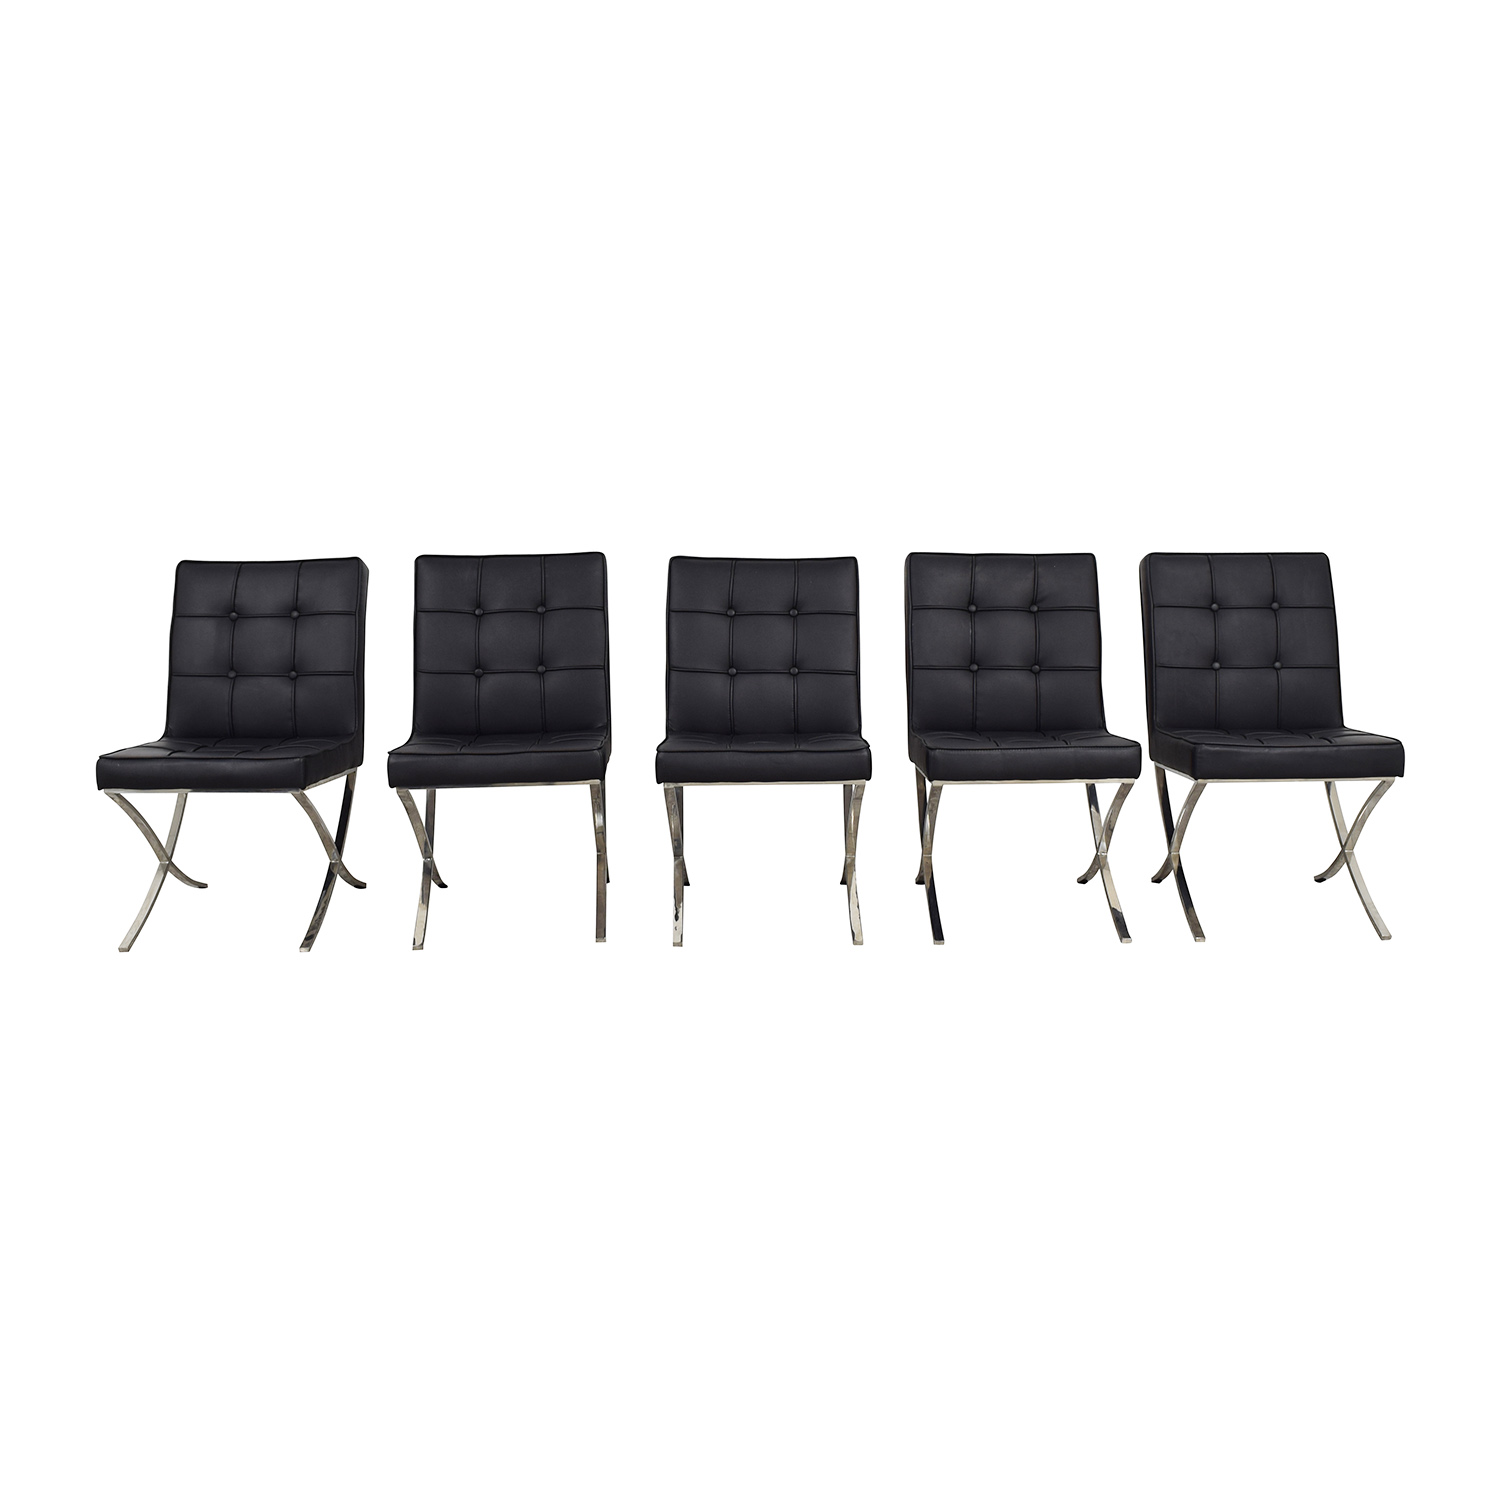 West Elm West Elm Black Tufted Leather Chairs discount